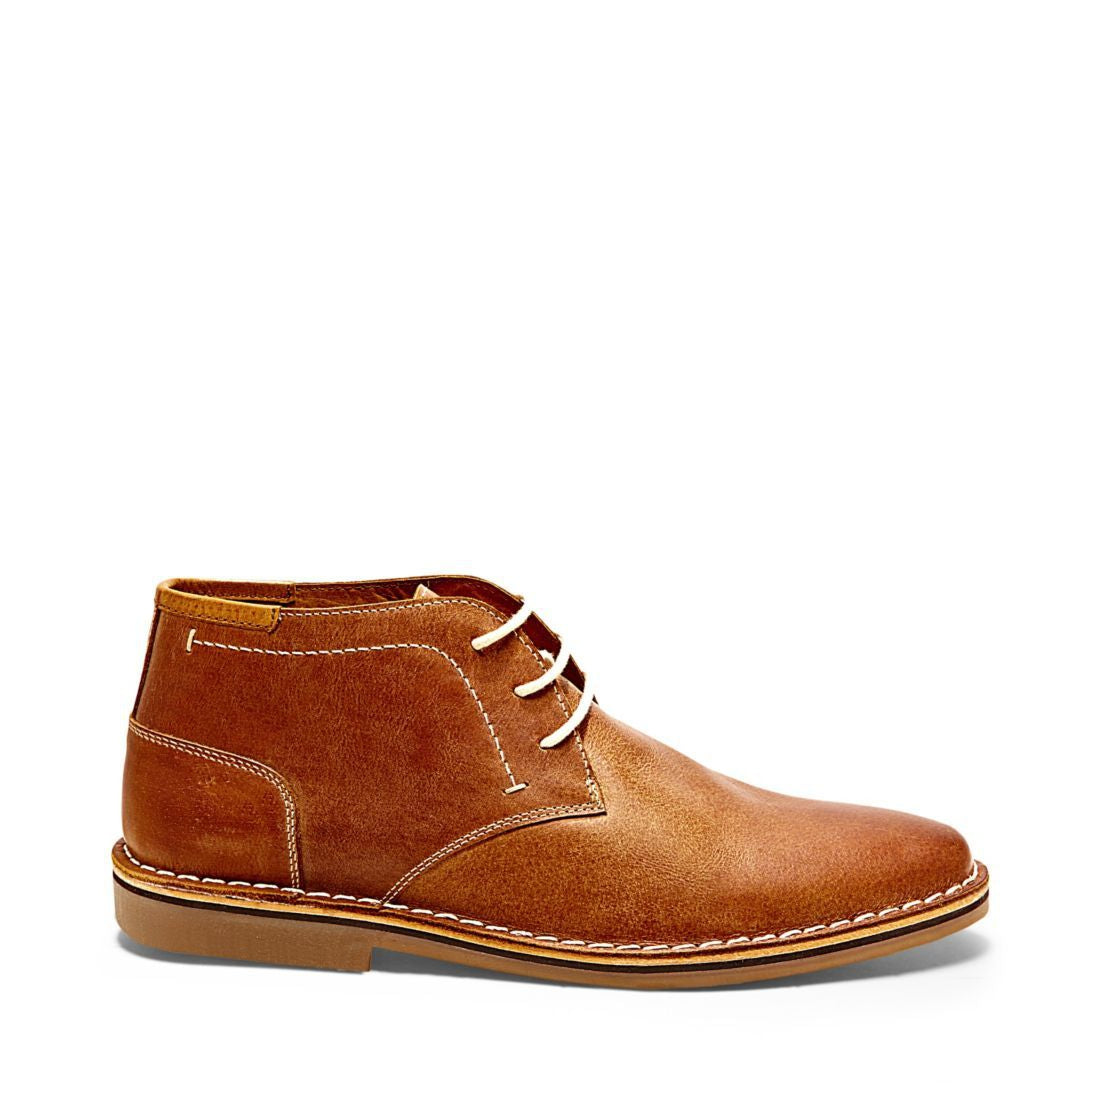 3b6203c7840 Steve Madden Men s Shoes on Sale + Free Shipping –translation missing   en.general.meta.tags – Steve Madden Canada